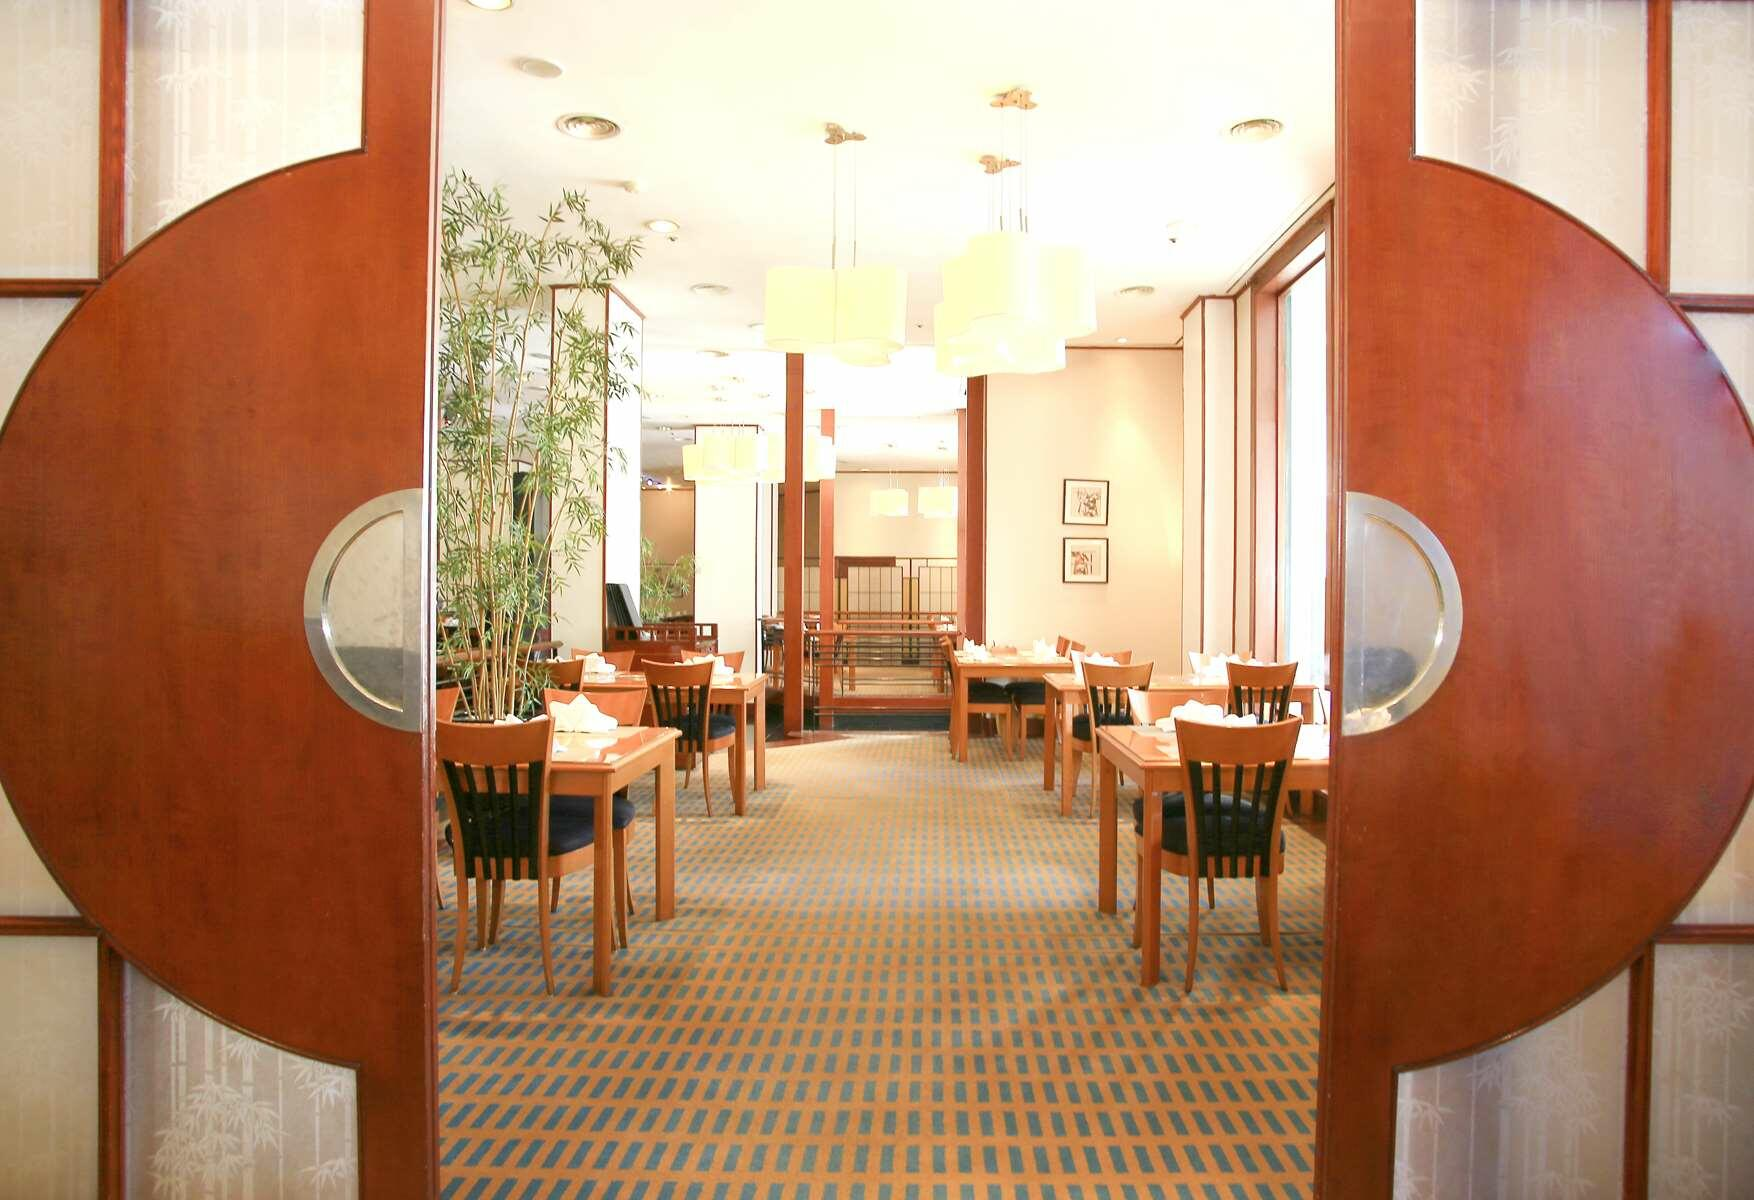 Dining at Hanoi Daewoo Hotel | Hotel Buffet Restaurants in Hanoi